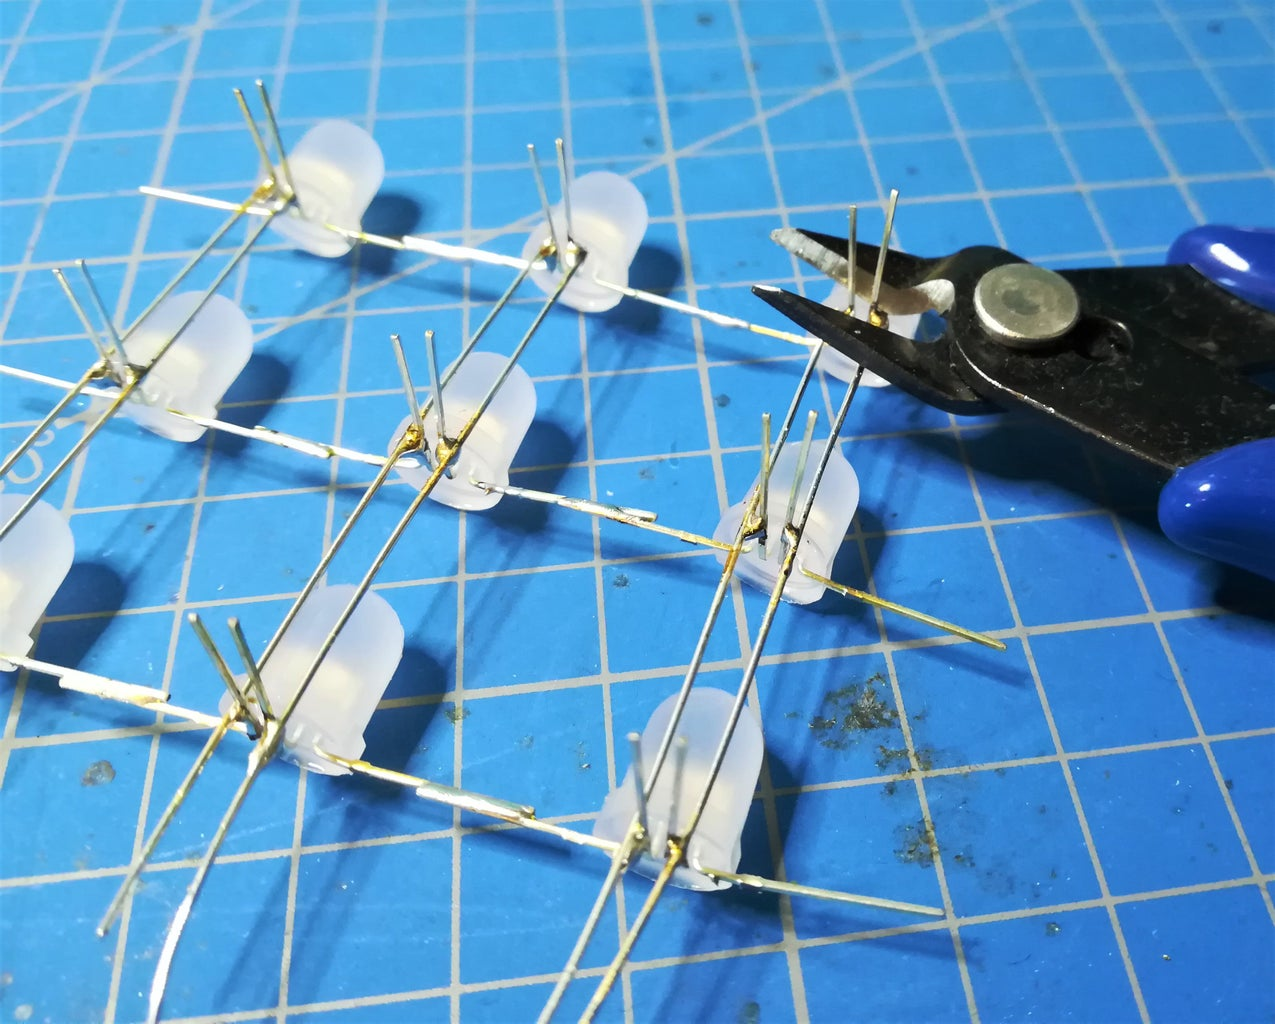 Removing the LEDs and Cutting the LED Pins